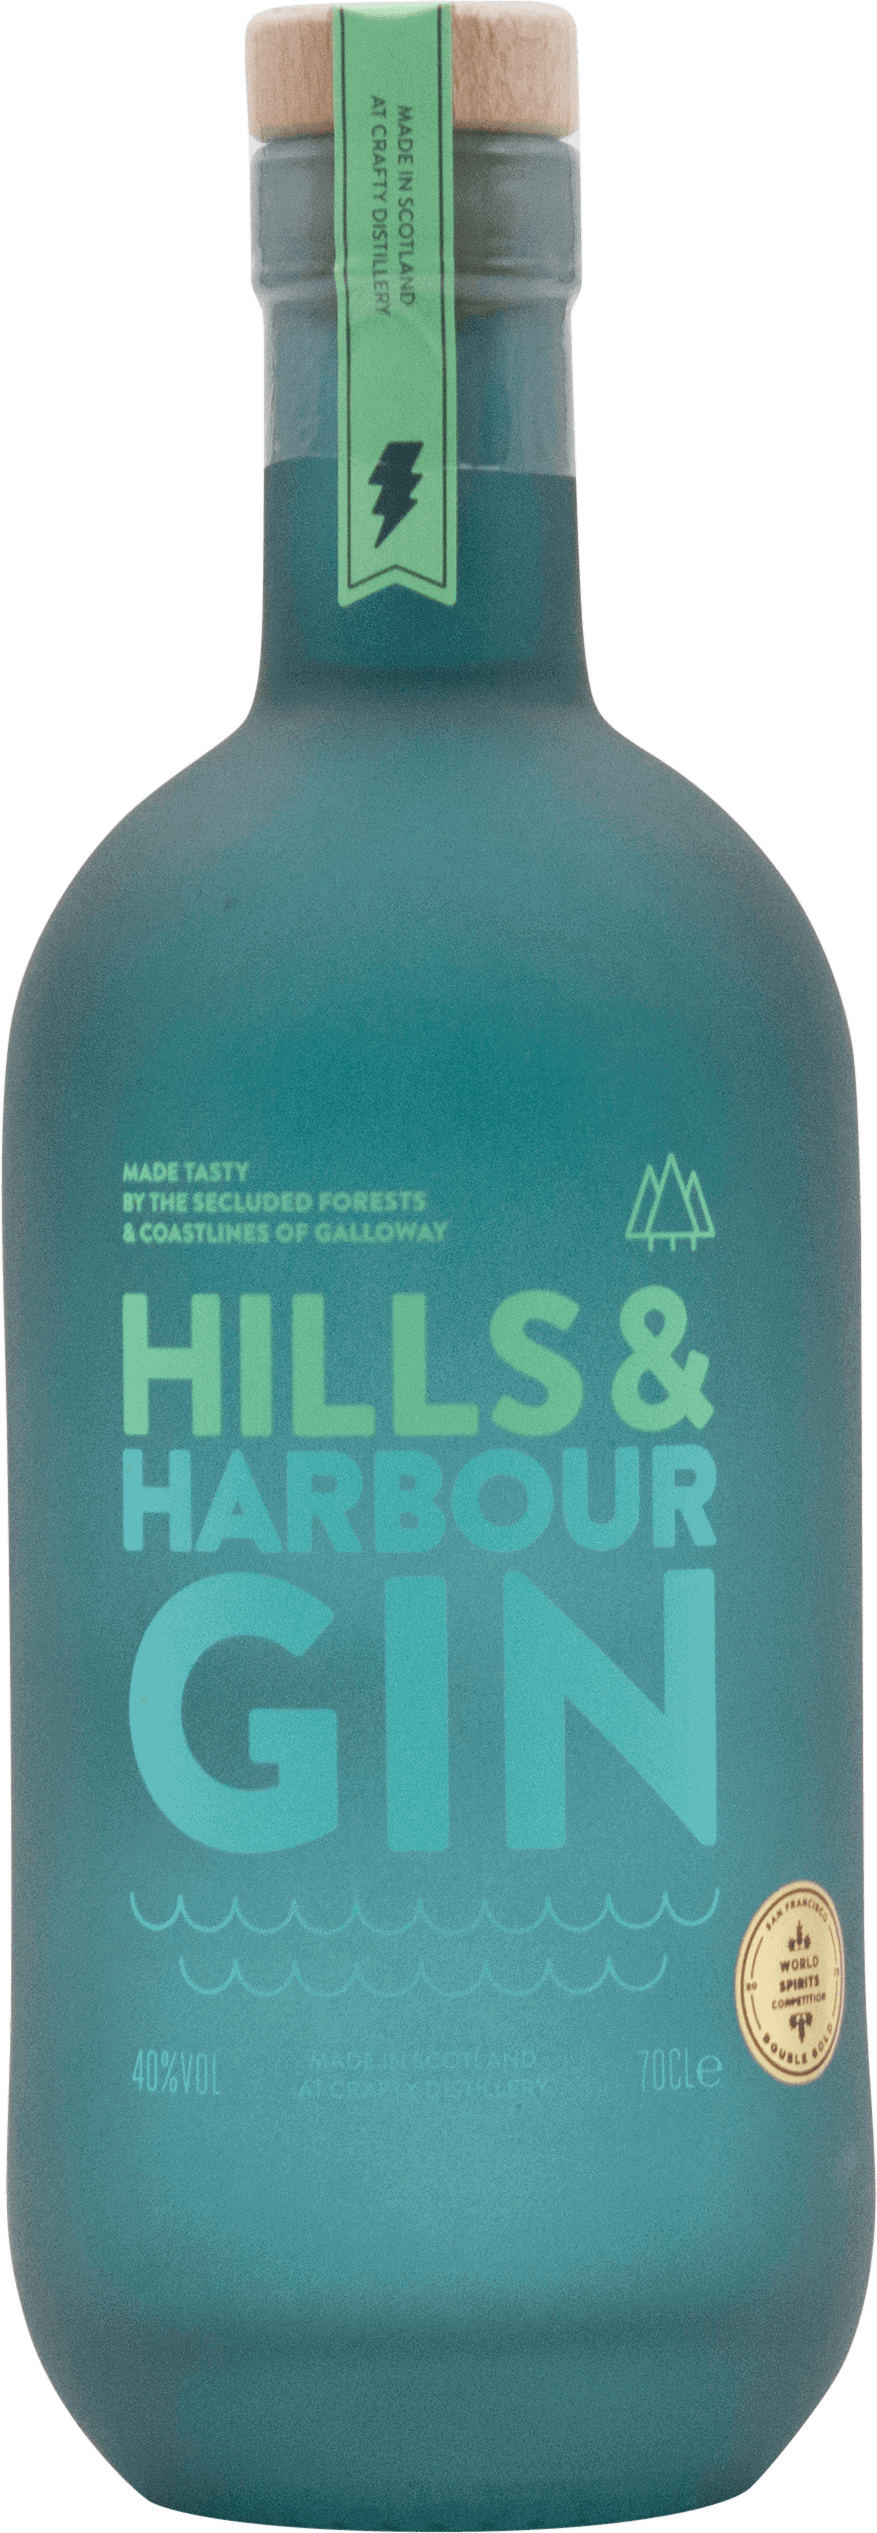 Hills & Harbour Scottish Gin